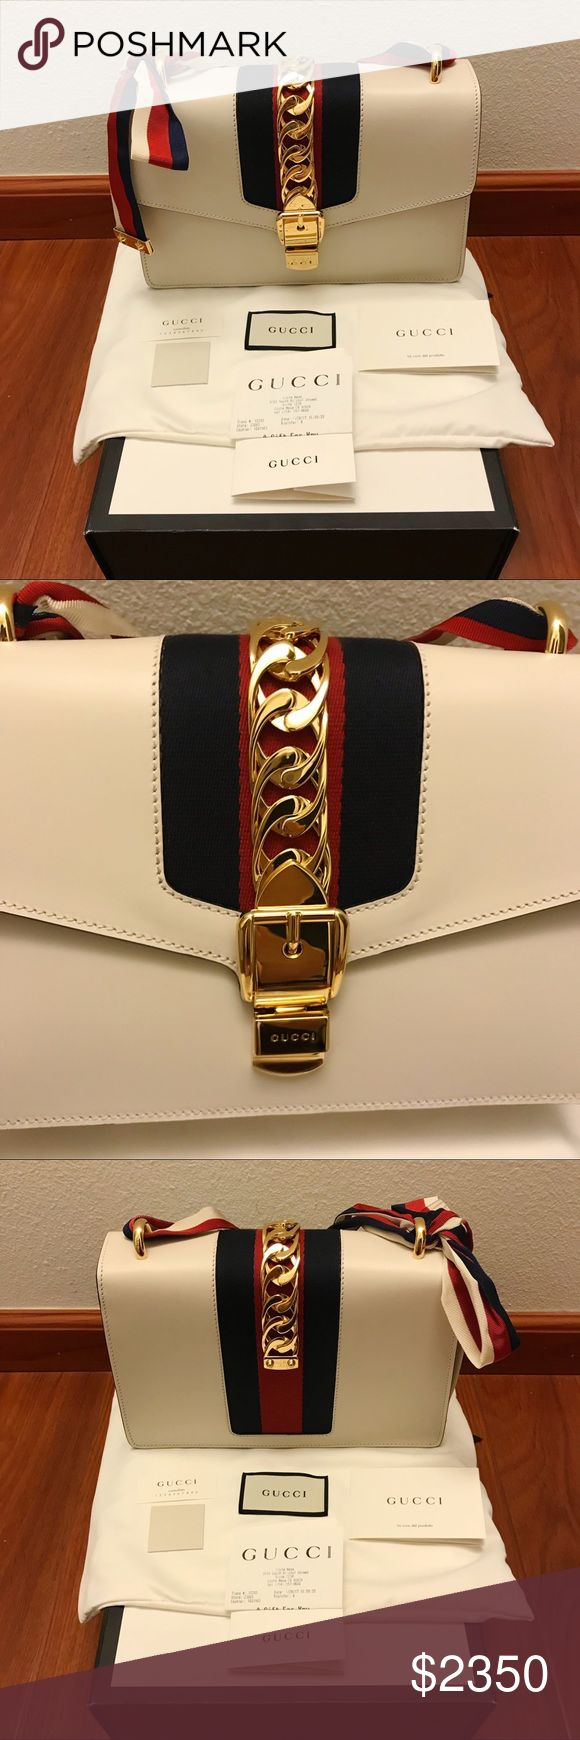 Gucci Sylvie Leather Bow Ribbon Shoulder Bag Purse Guaranteed authentic, with gift receipt from South Coast Plaza. Used only once, as seen from pictures it is in like new condition! Perfect size that fits everyday essentials. Comes with everything in picture - box, dust bag, gift receipt, booklet. Price cheaper through 🅿️🅿️! No Trades! Gucci Bags Shoulder Bags